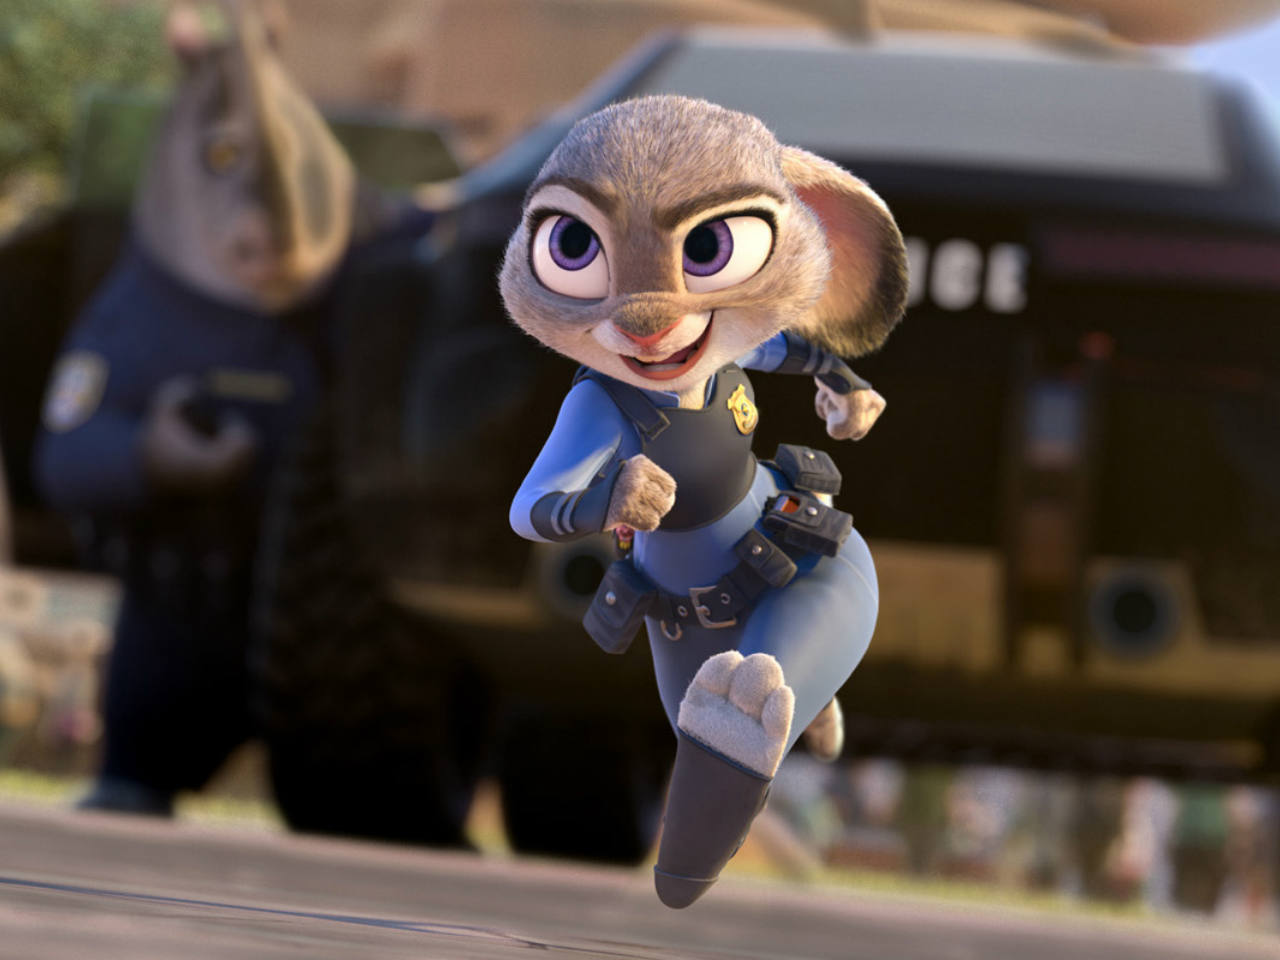 A photo from the kids' movie Zootopia